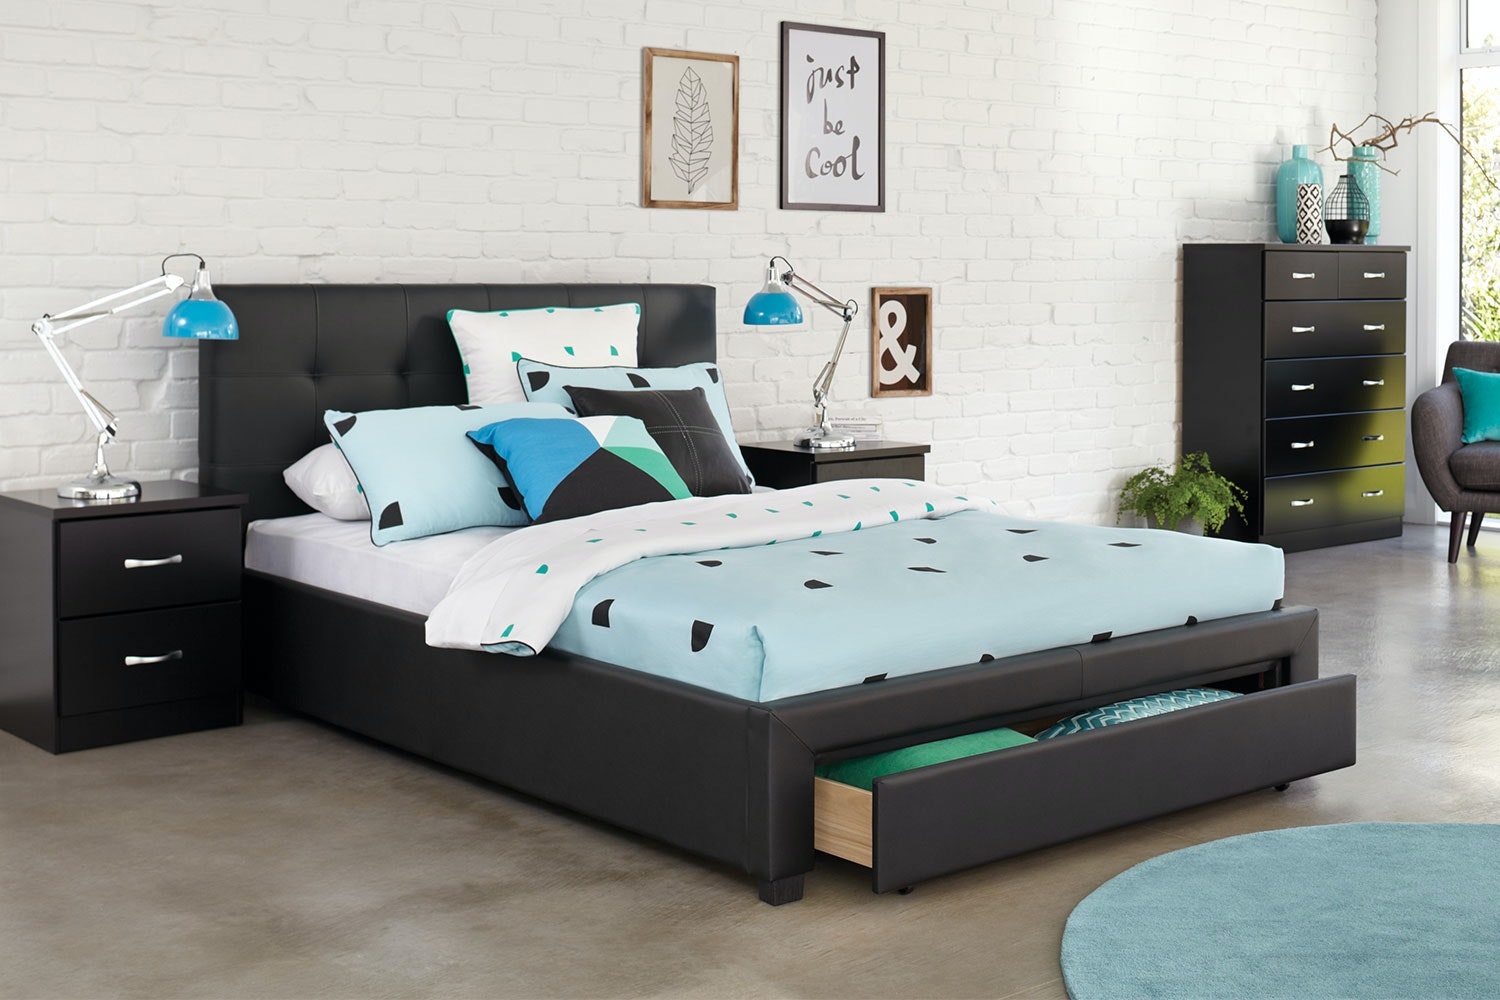 Stockholm Queen Storage Bed Frame with Dominic Bedsides and Tallboy | Harvey Norman New Zealand & Stockholm Queen Storage Bed Frame with Dominic Bedsides and Tallboy ...